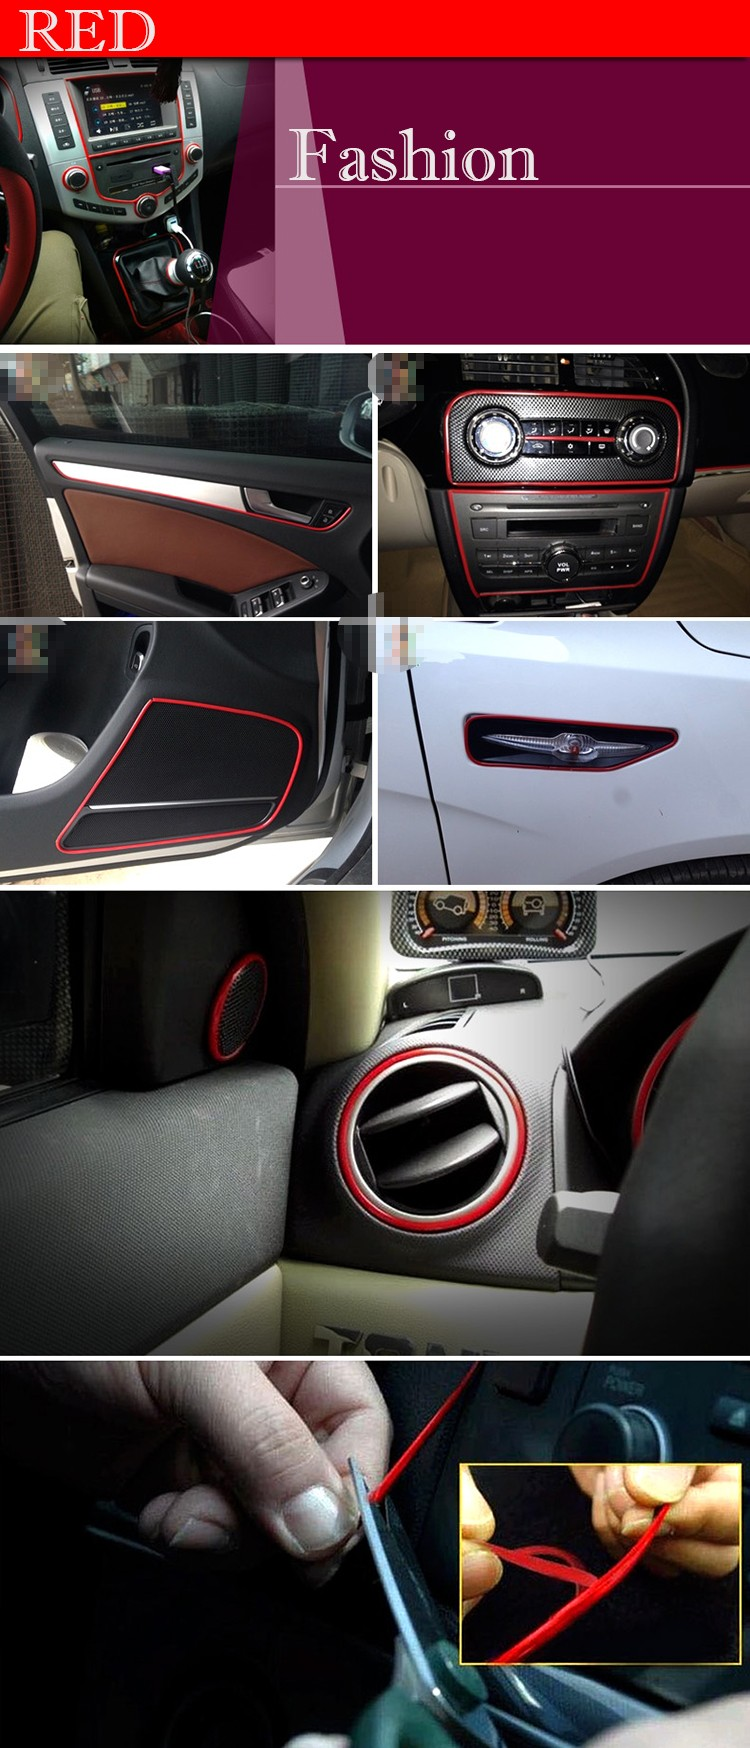 5m Car Exterior Accessories Decoration Car Stickers Modify Car Styling Indoor Re Ebay